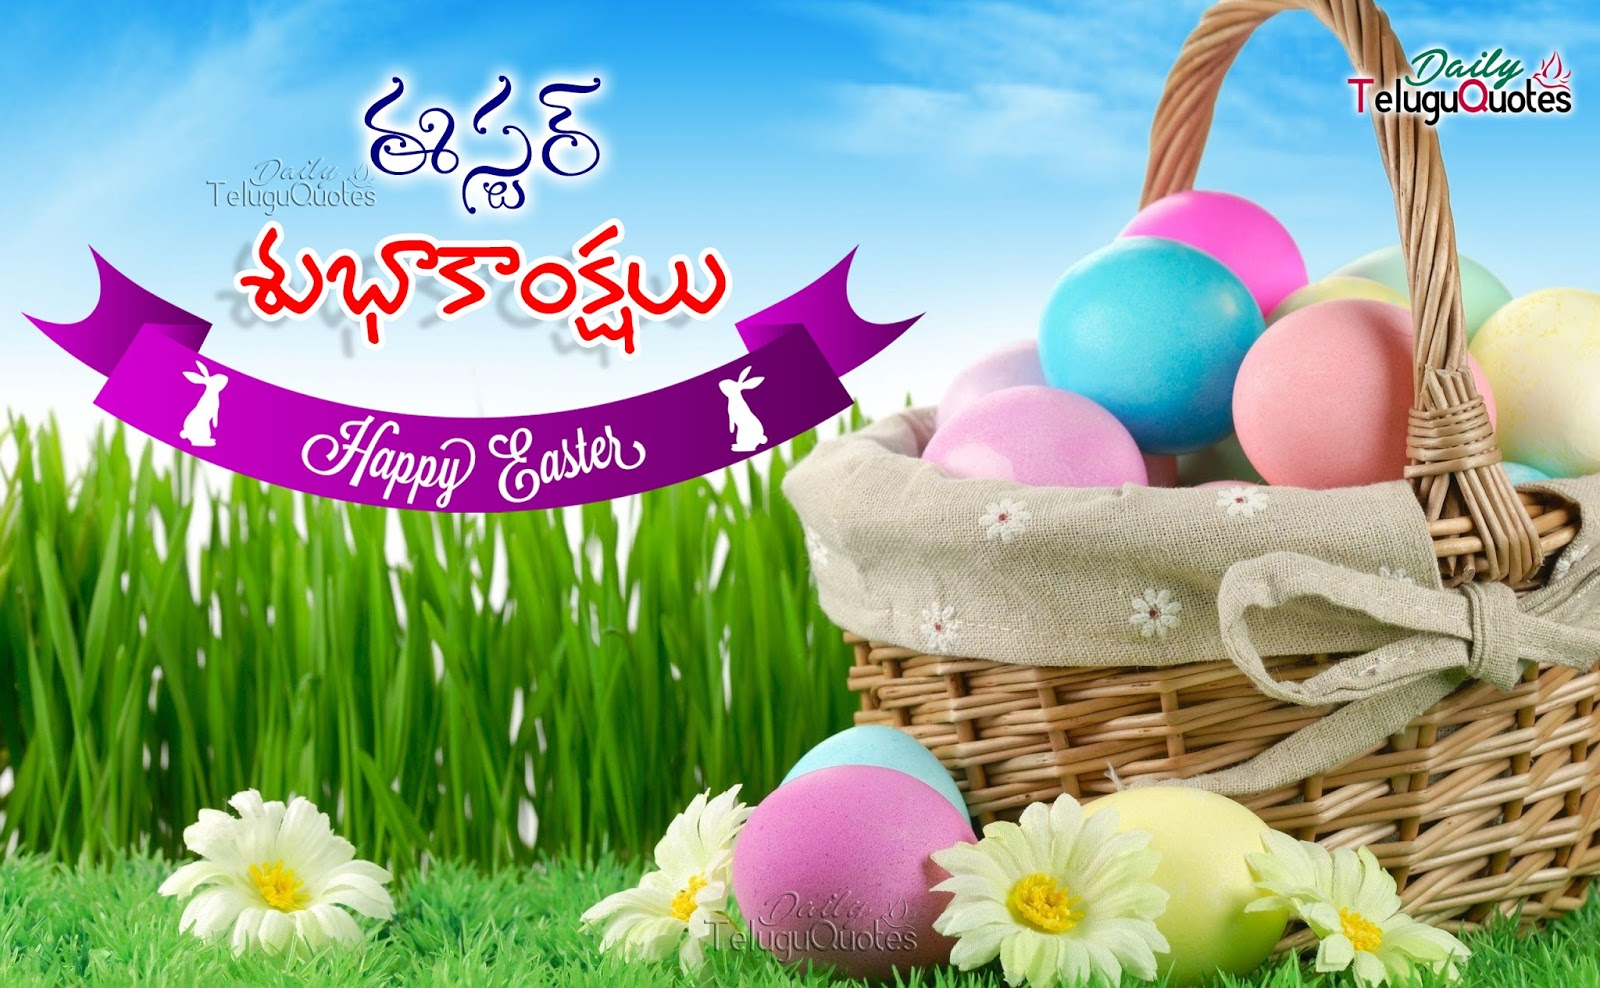 Easter Sunday Telugu Quotes Greetings Messages For Family And